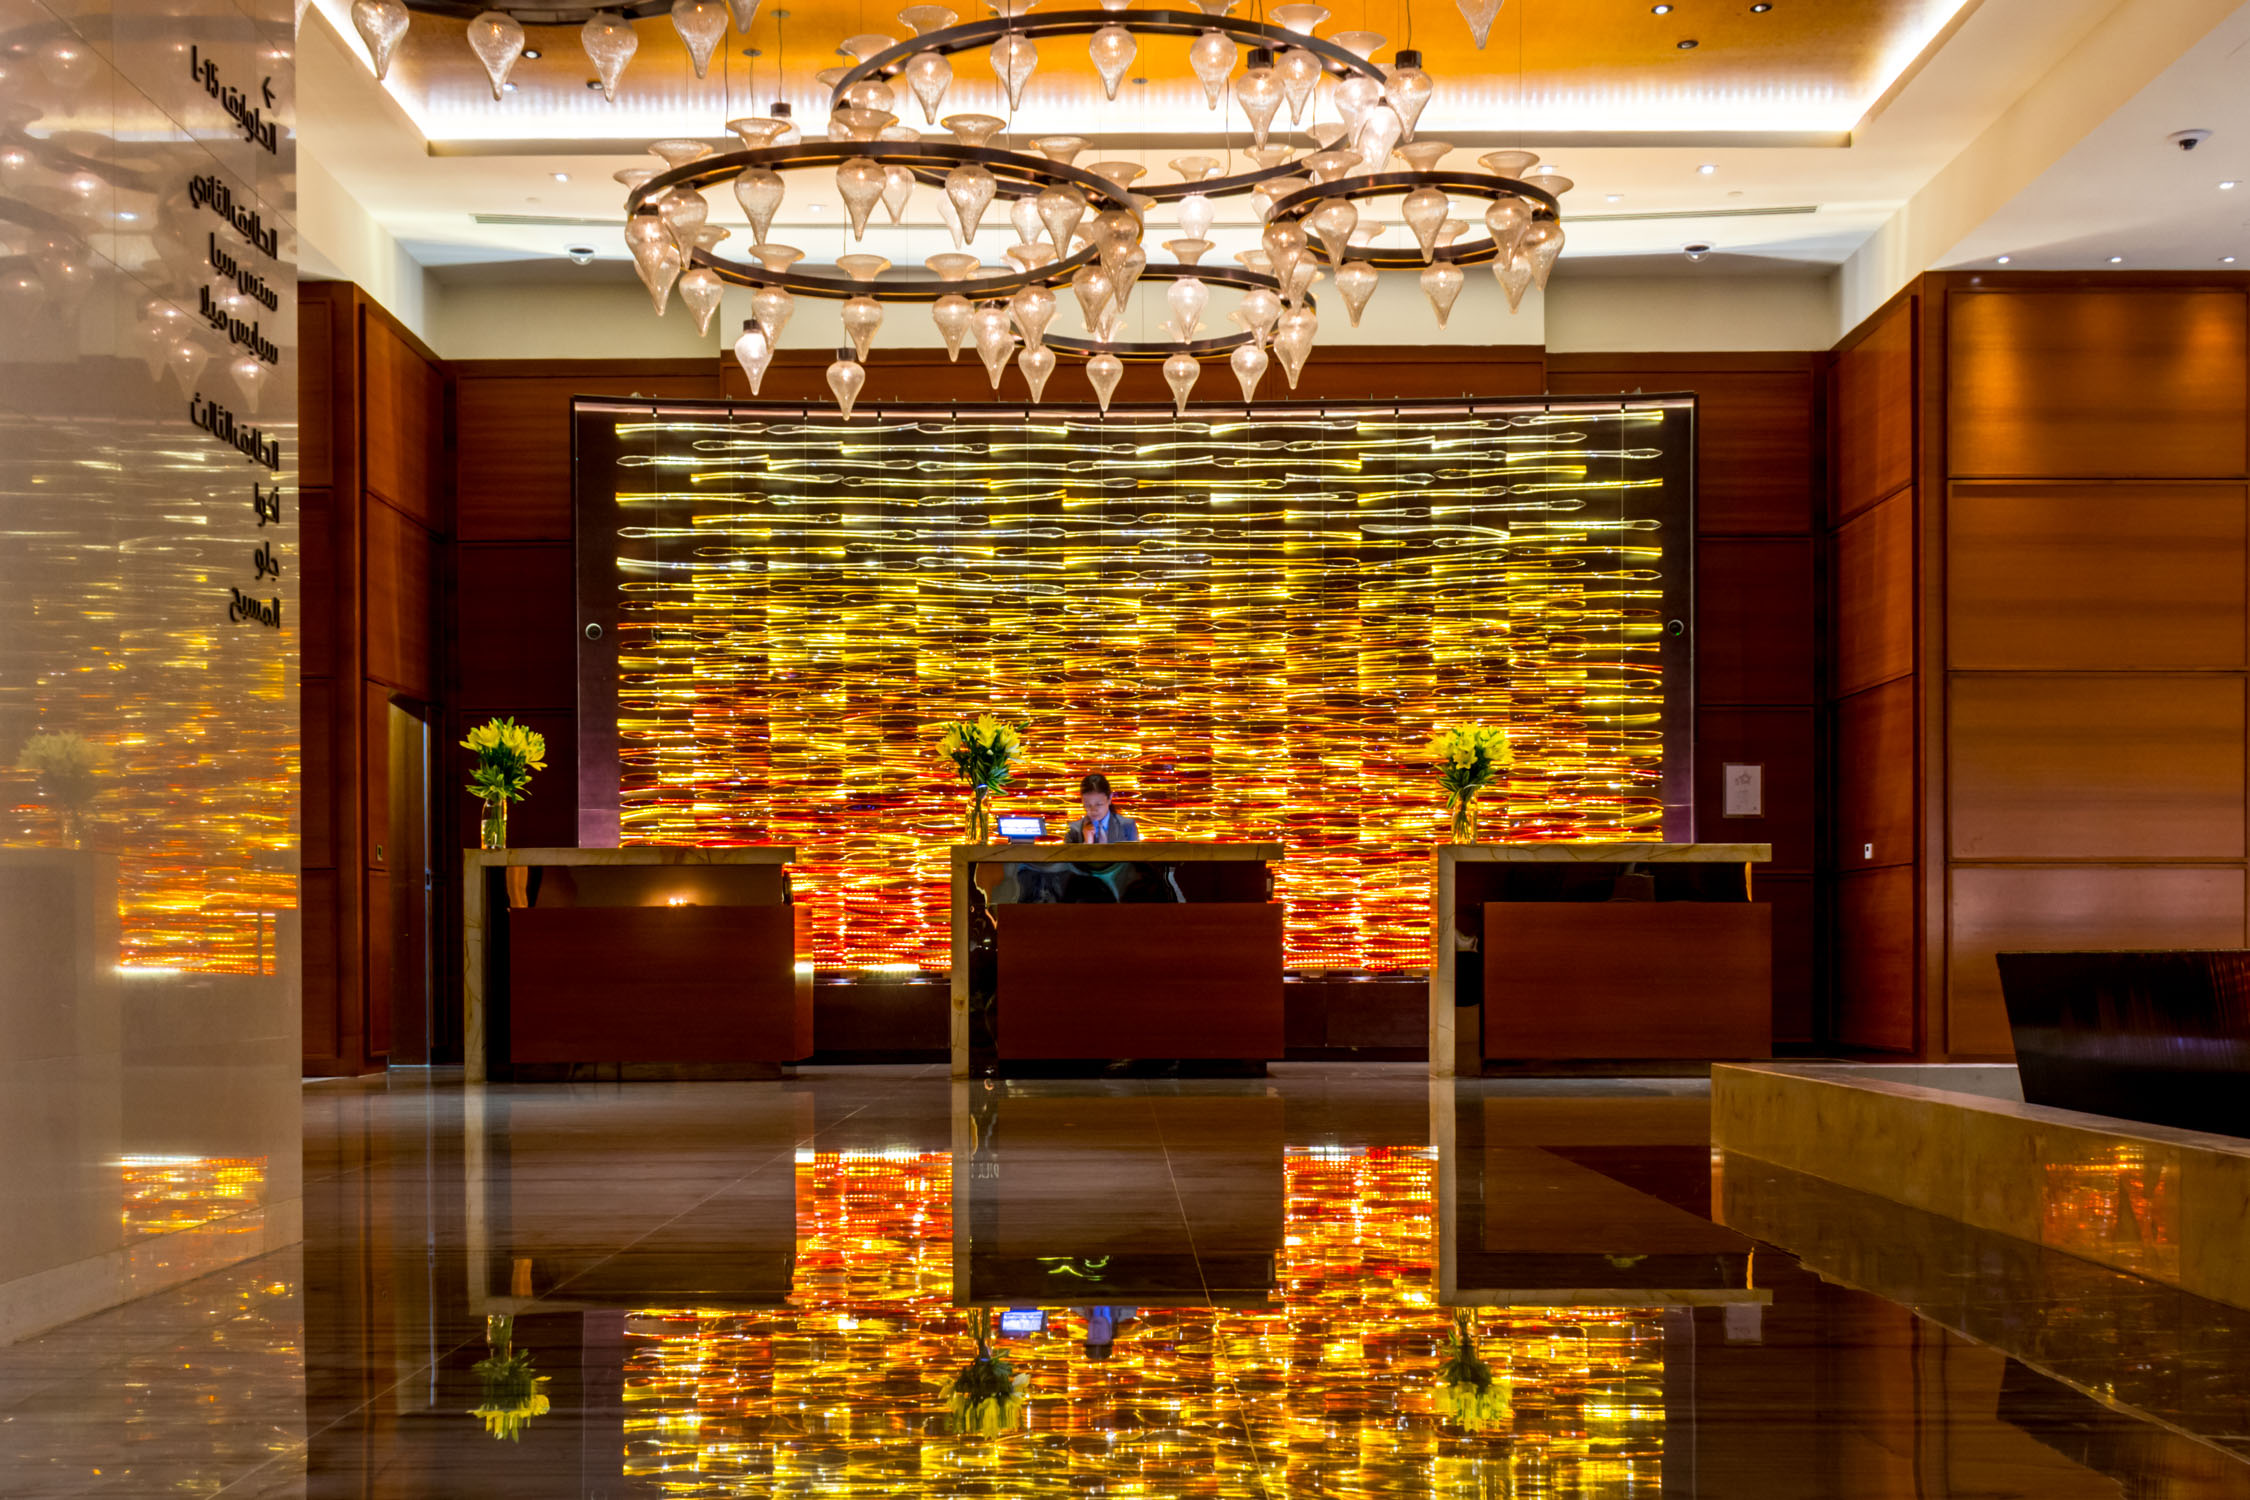 The lobby of the Rosewood Abu Dhabi